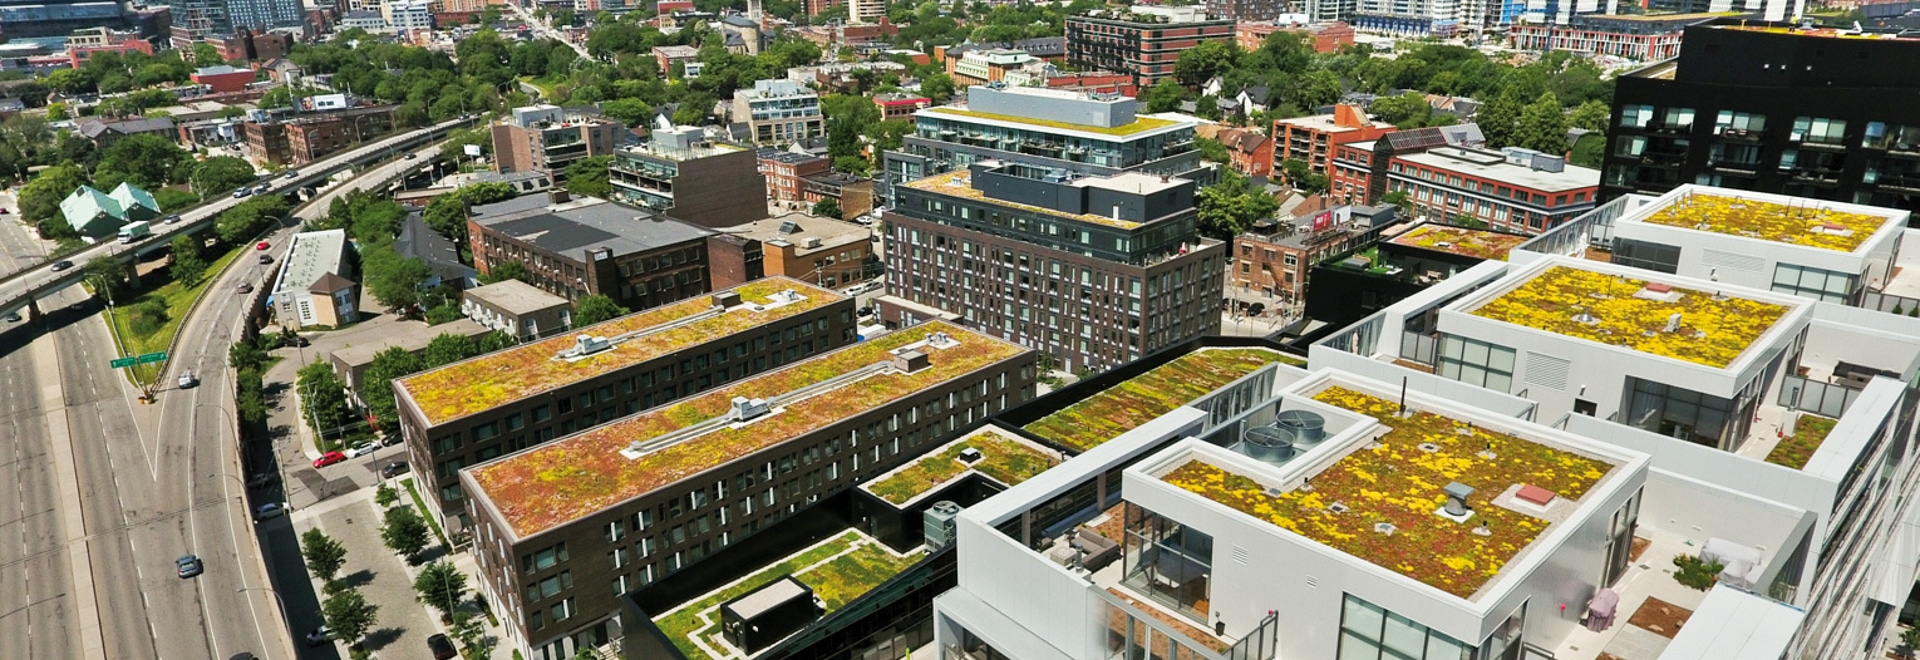 At BAU 2019, ZinCo will demonstrate how to build innovative green roofs. Our example shows the River City condos, Toronto, Canada.